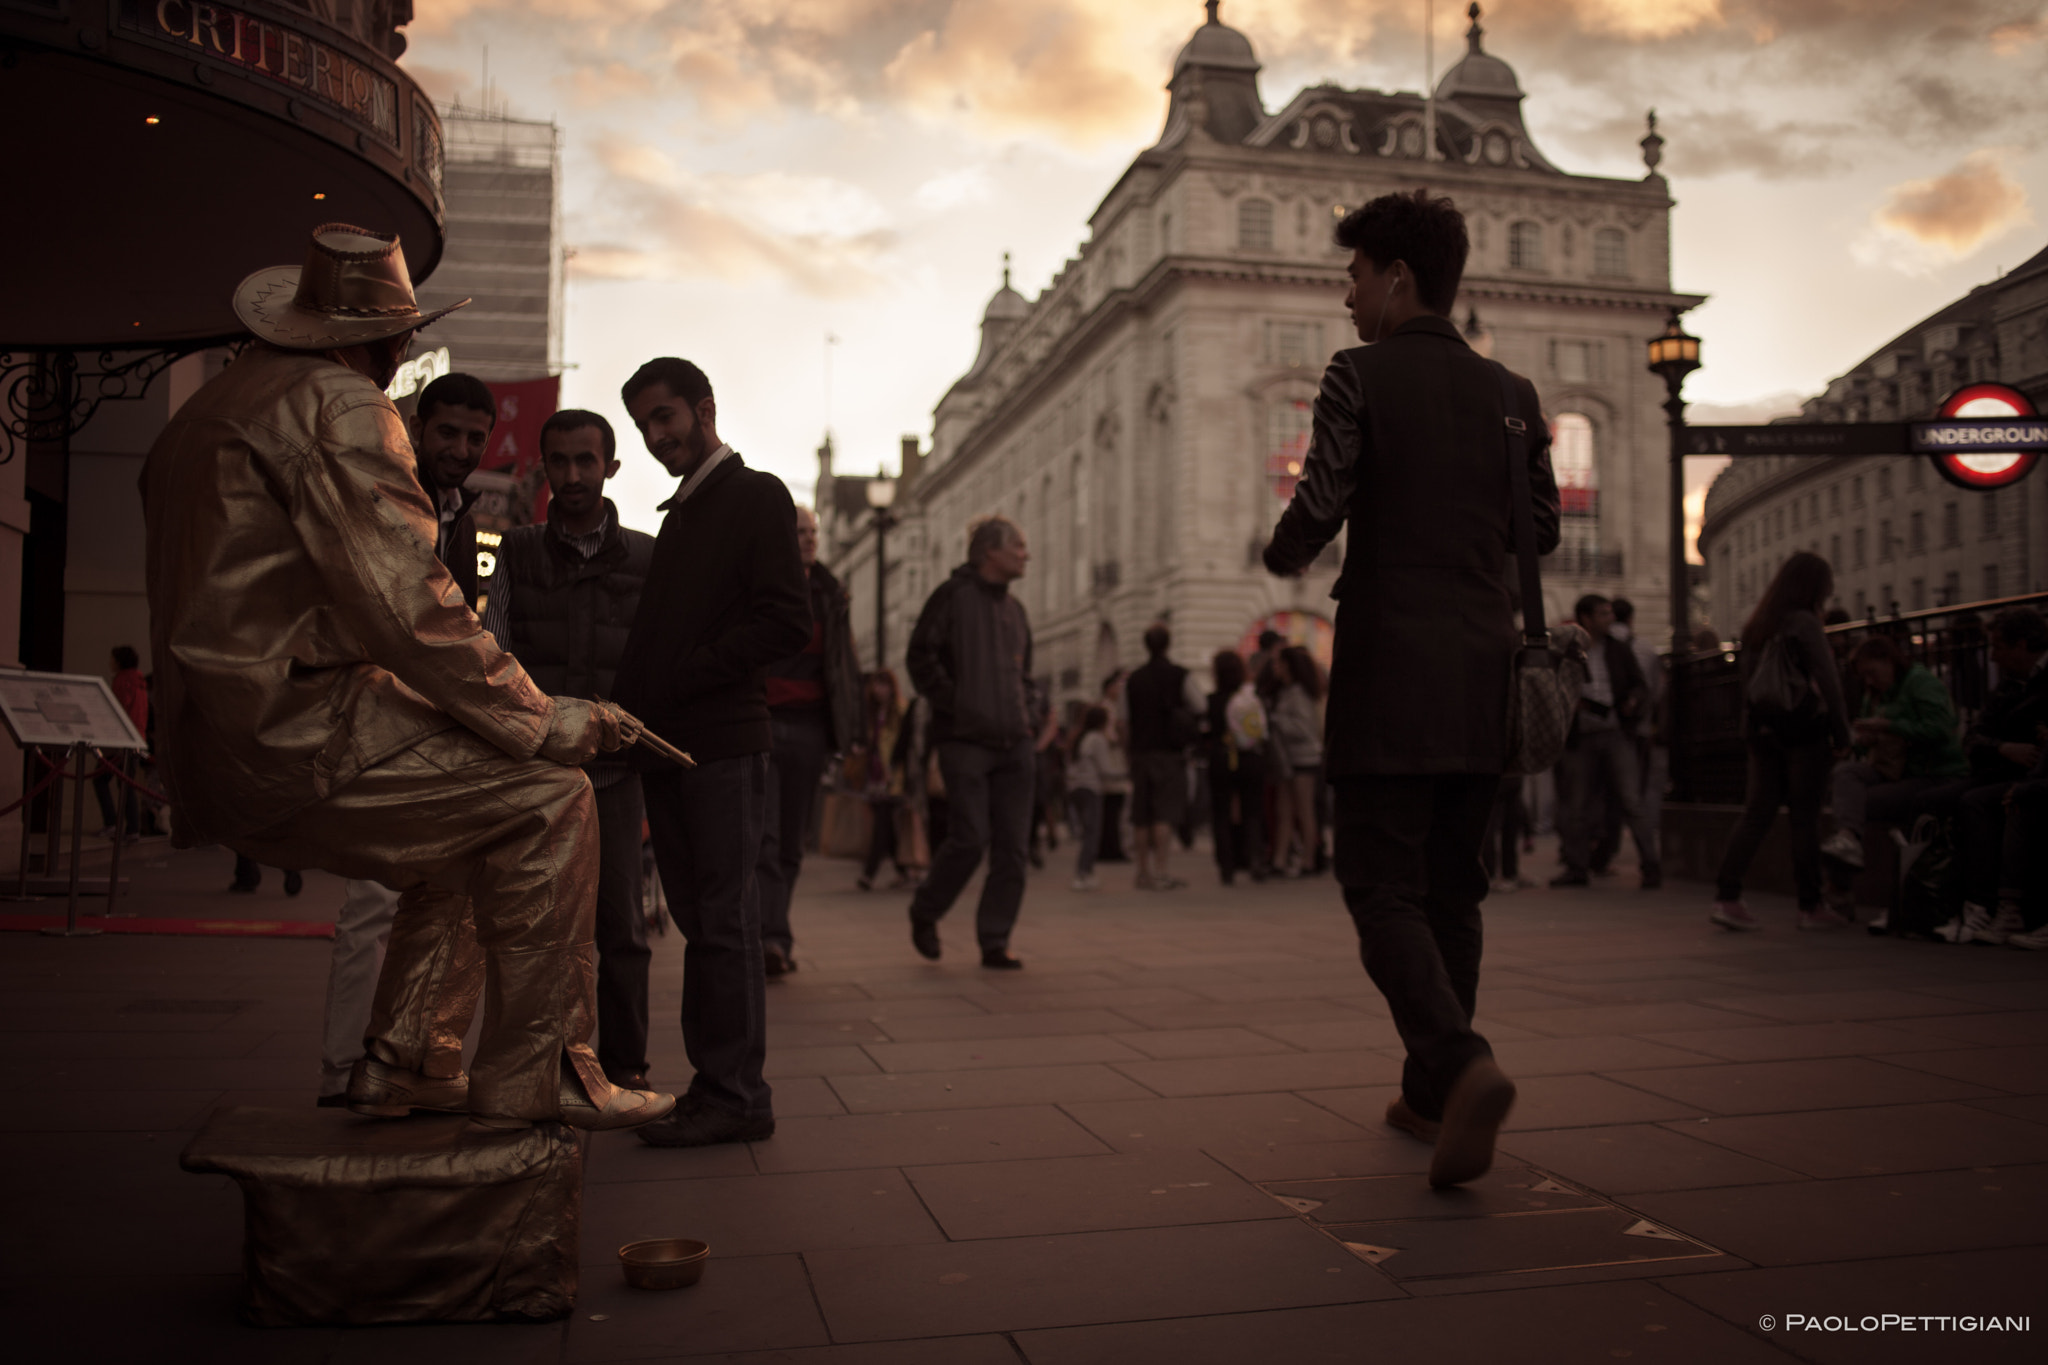 Photograph Piccadilly Circus by Paolo Pettigiani on 500px